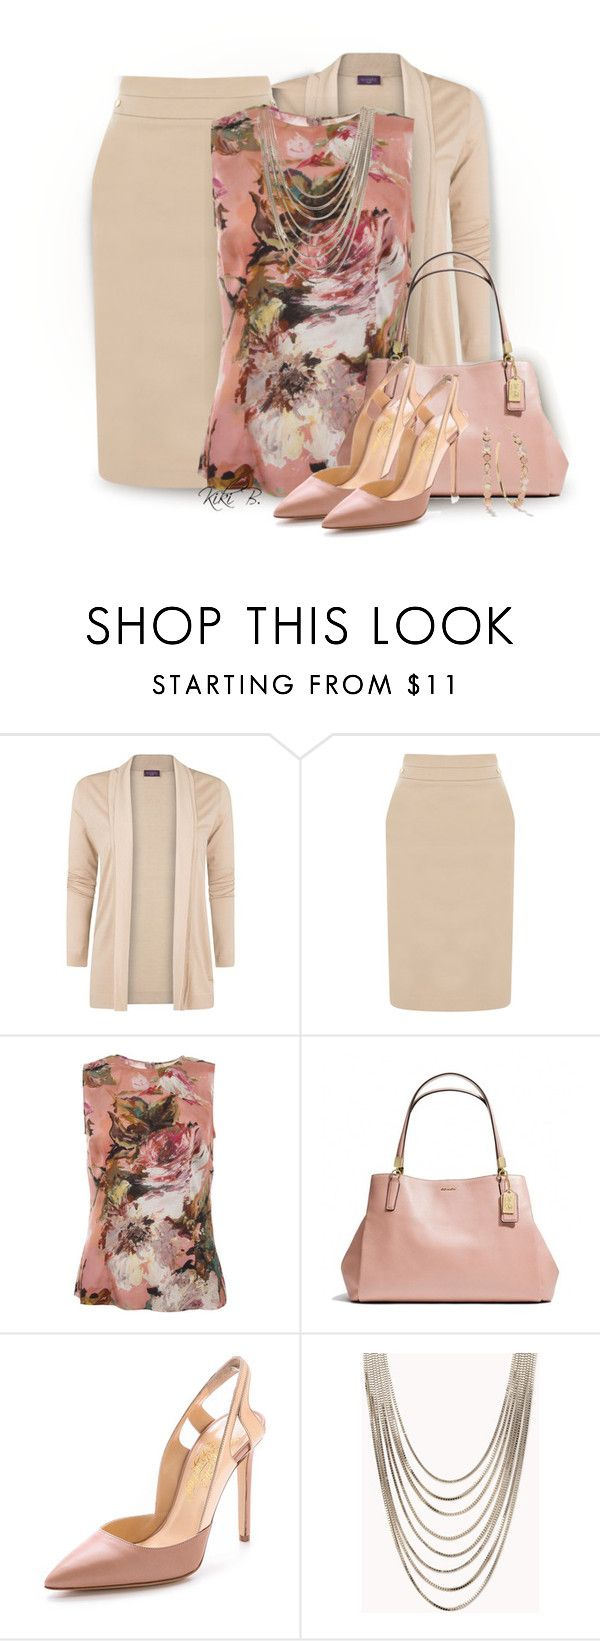 """""""Working Monday"""" by kiki-bi ❤ liked on Polyvore featuring MANGO, Oasis, Dolce&Gabbana, Coach, Alejandro Ingelmo, Forever 21 and Ippolita"""